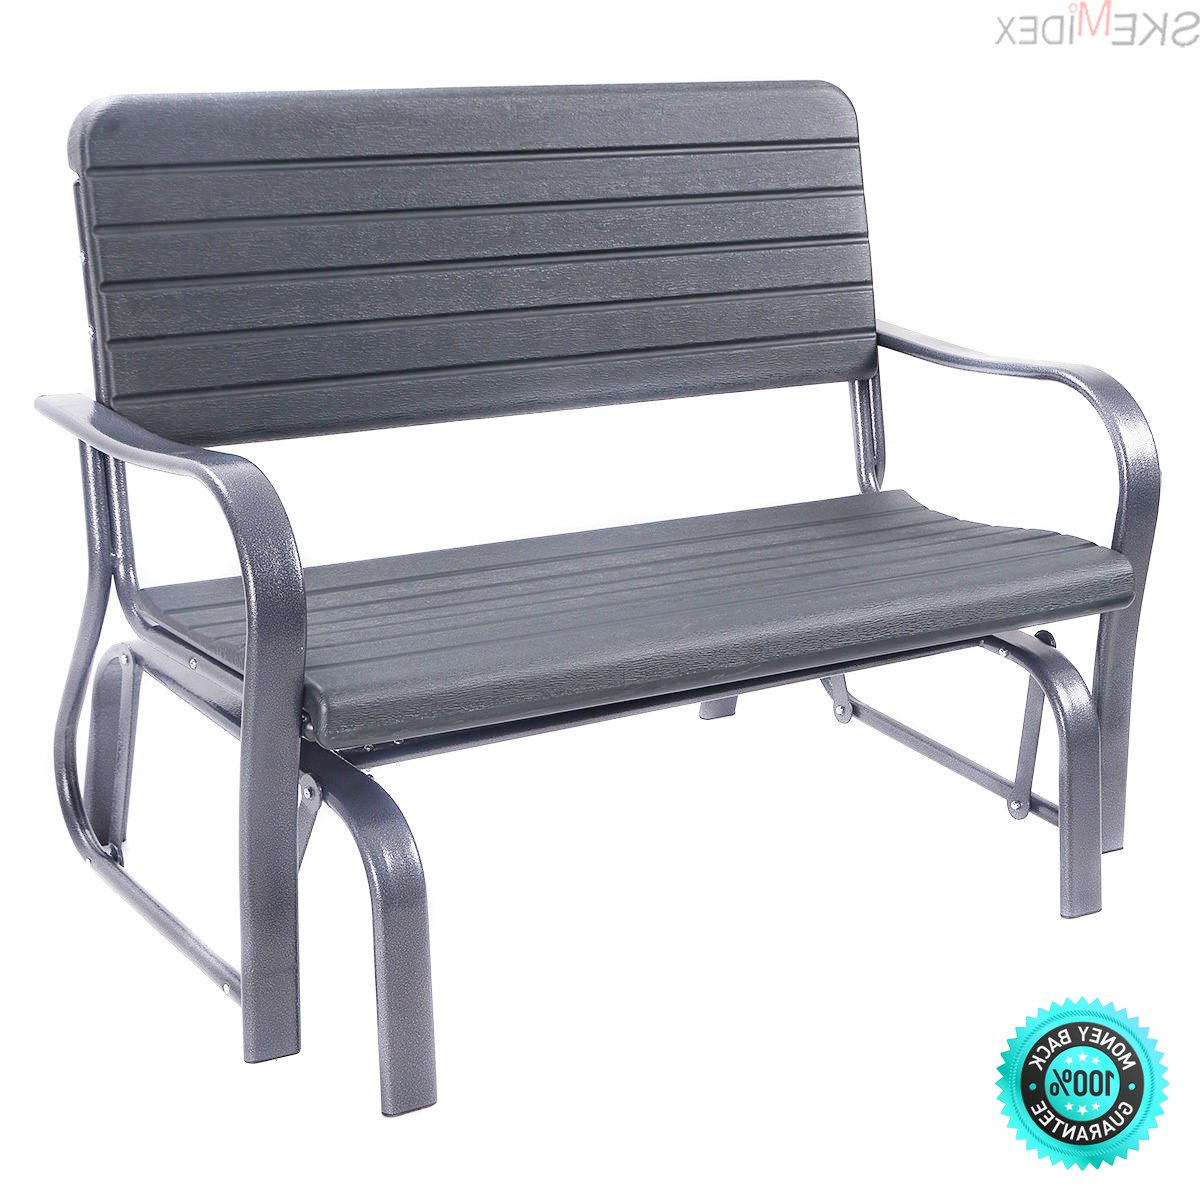 Outdoor Steel Patio Swing Glider Benches For Most Popular Amazon : Skemidex Outdoor Patio Swing Porch Rocker (Gallery 5 of 30)